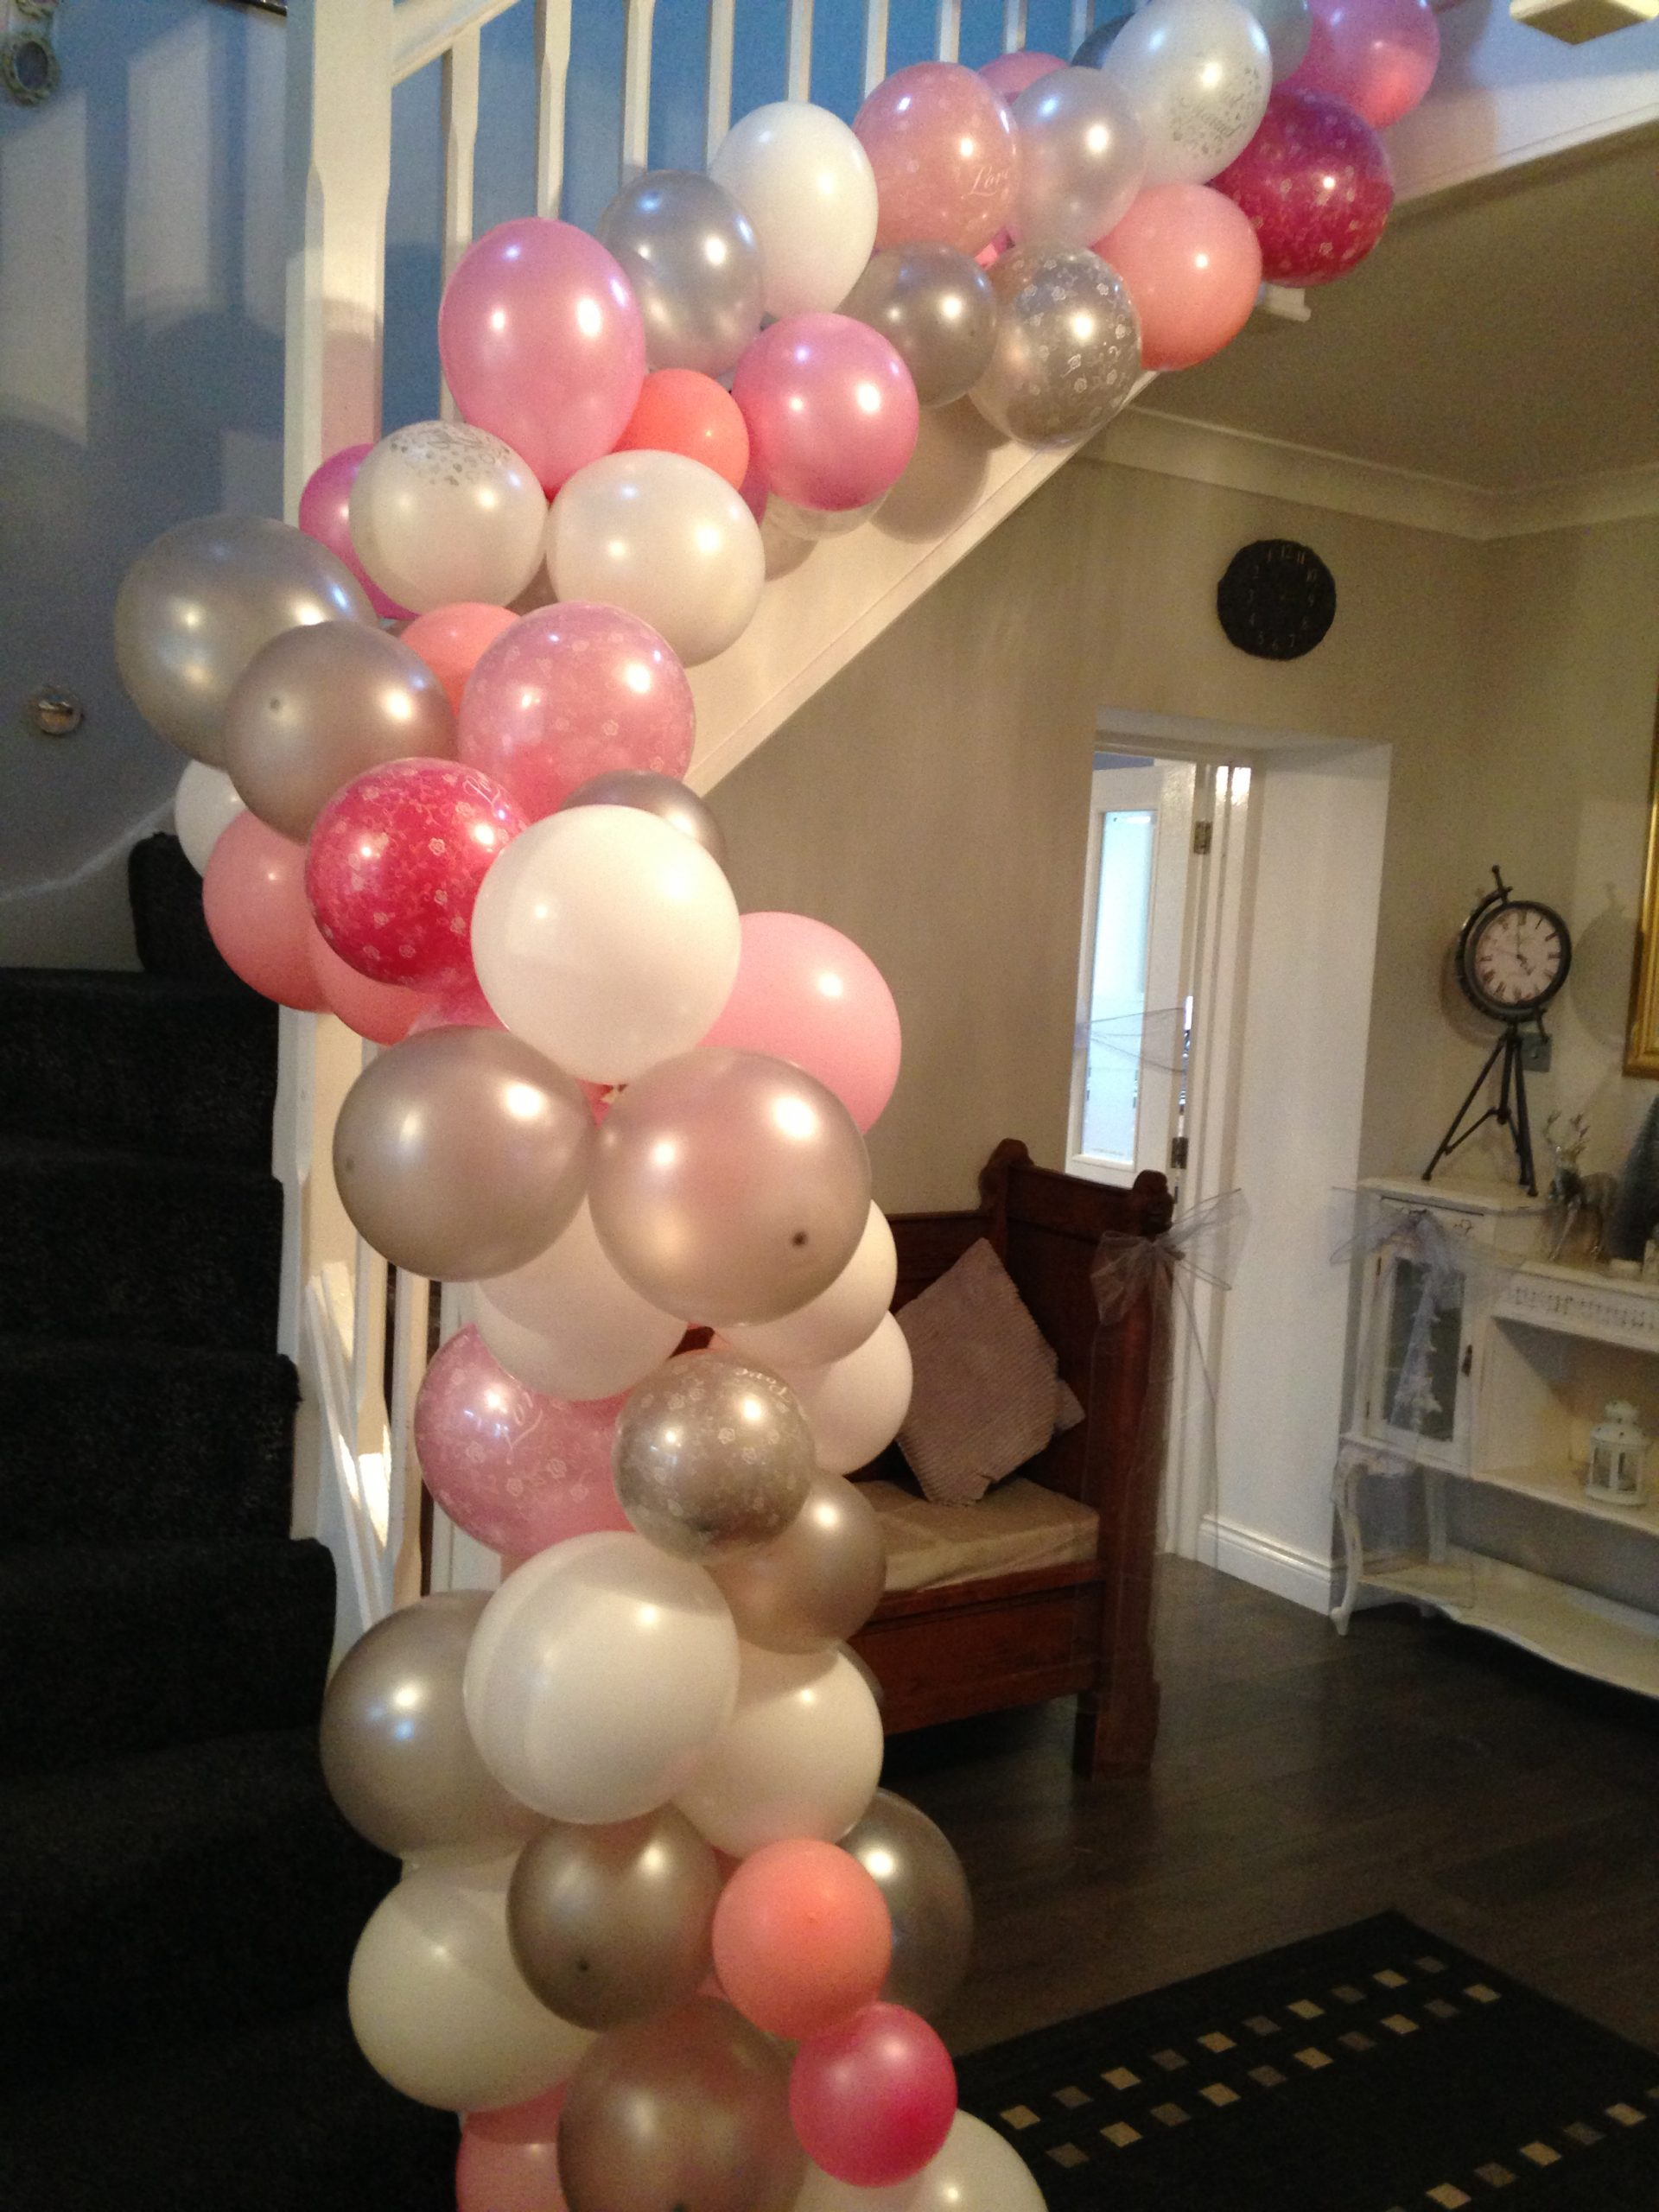 Party balloons up stairs